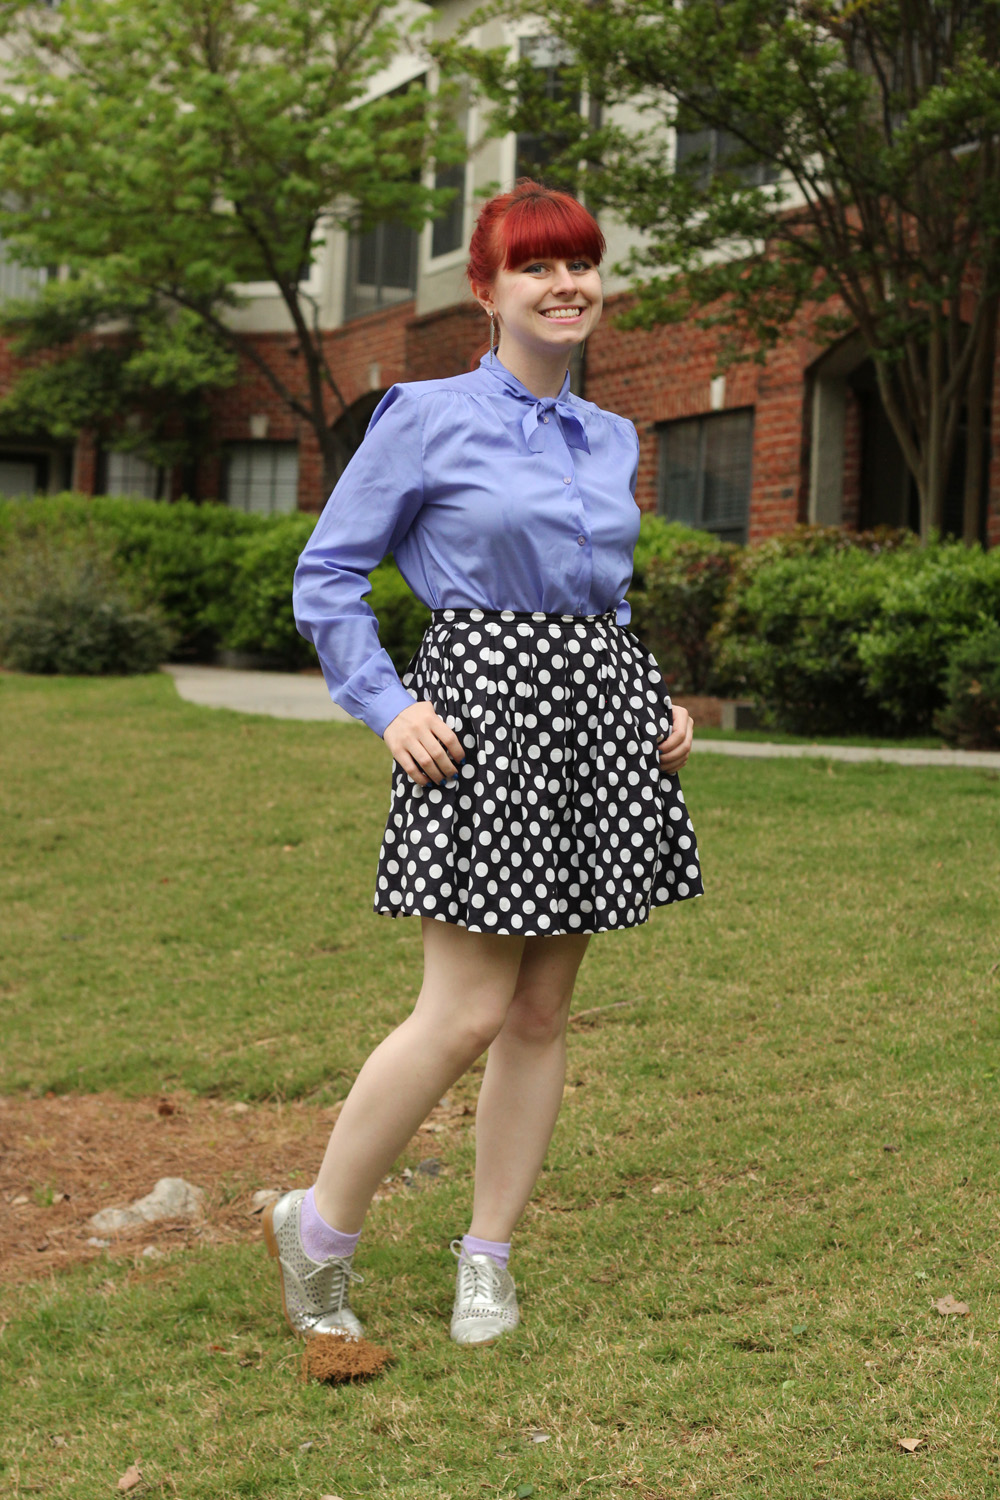 Retro Bow Neck Blouse with a Pleated Navy Blue Polka Dot Skirt and Silver Oxford Shoes